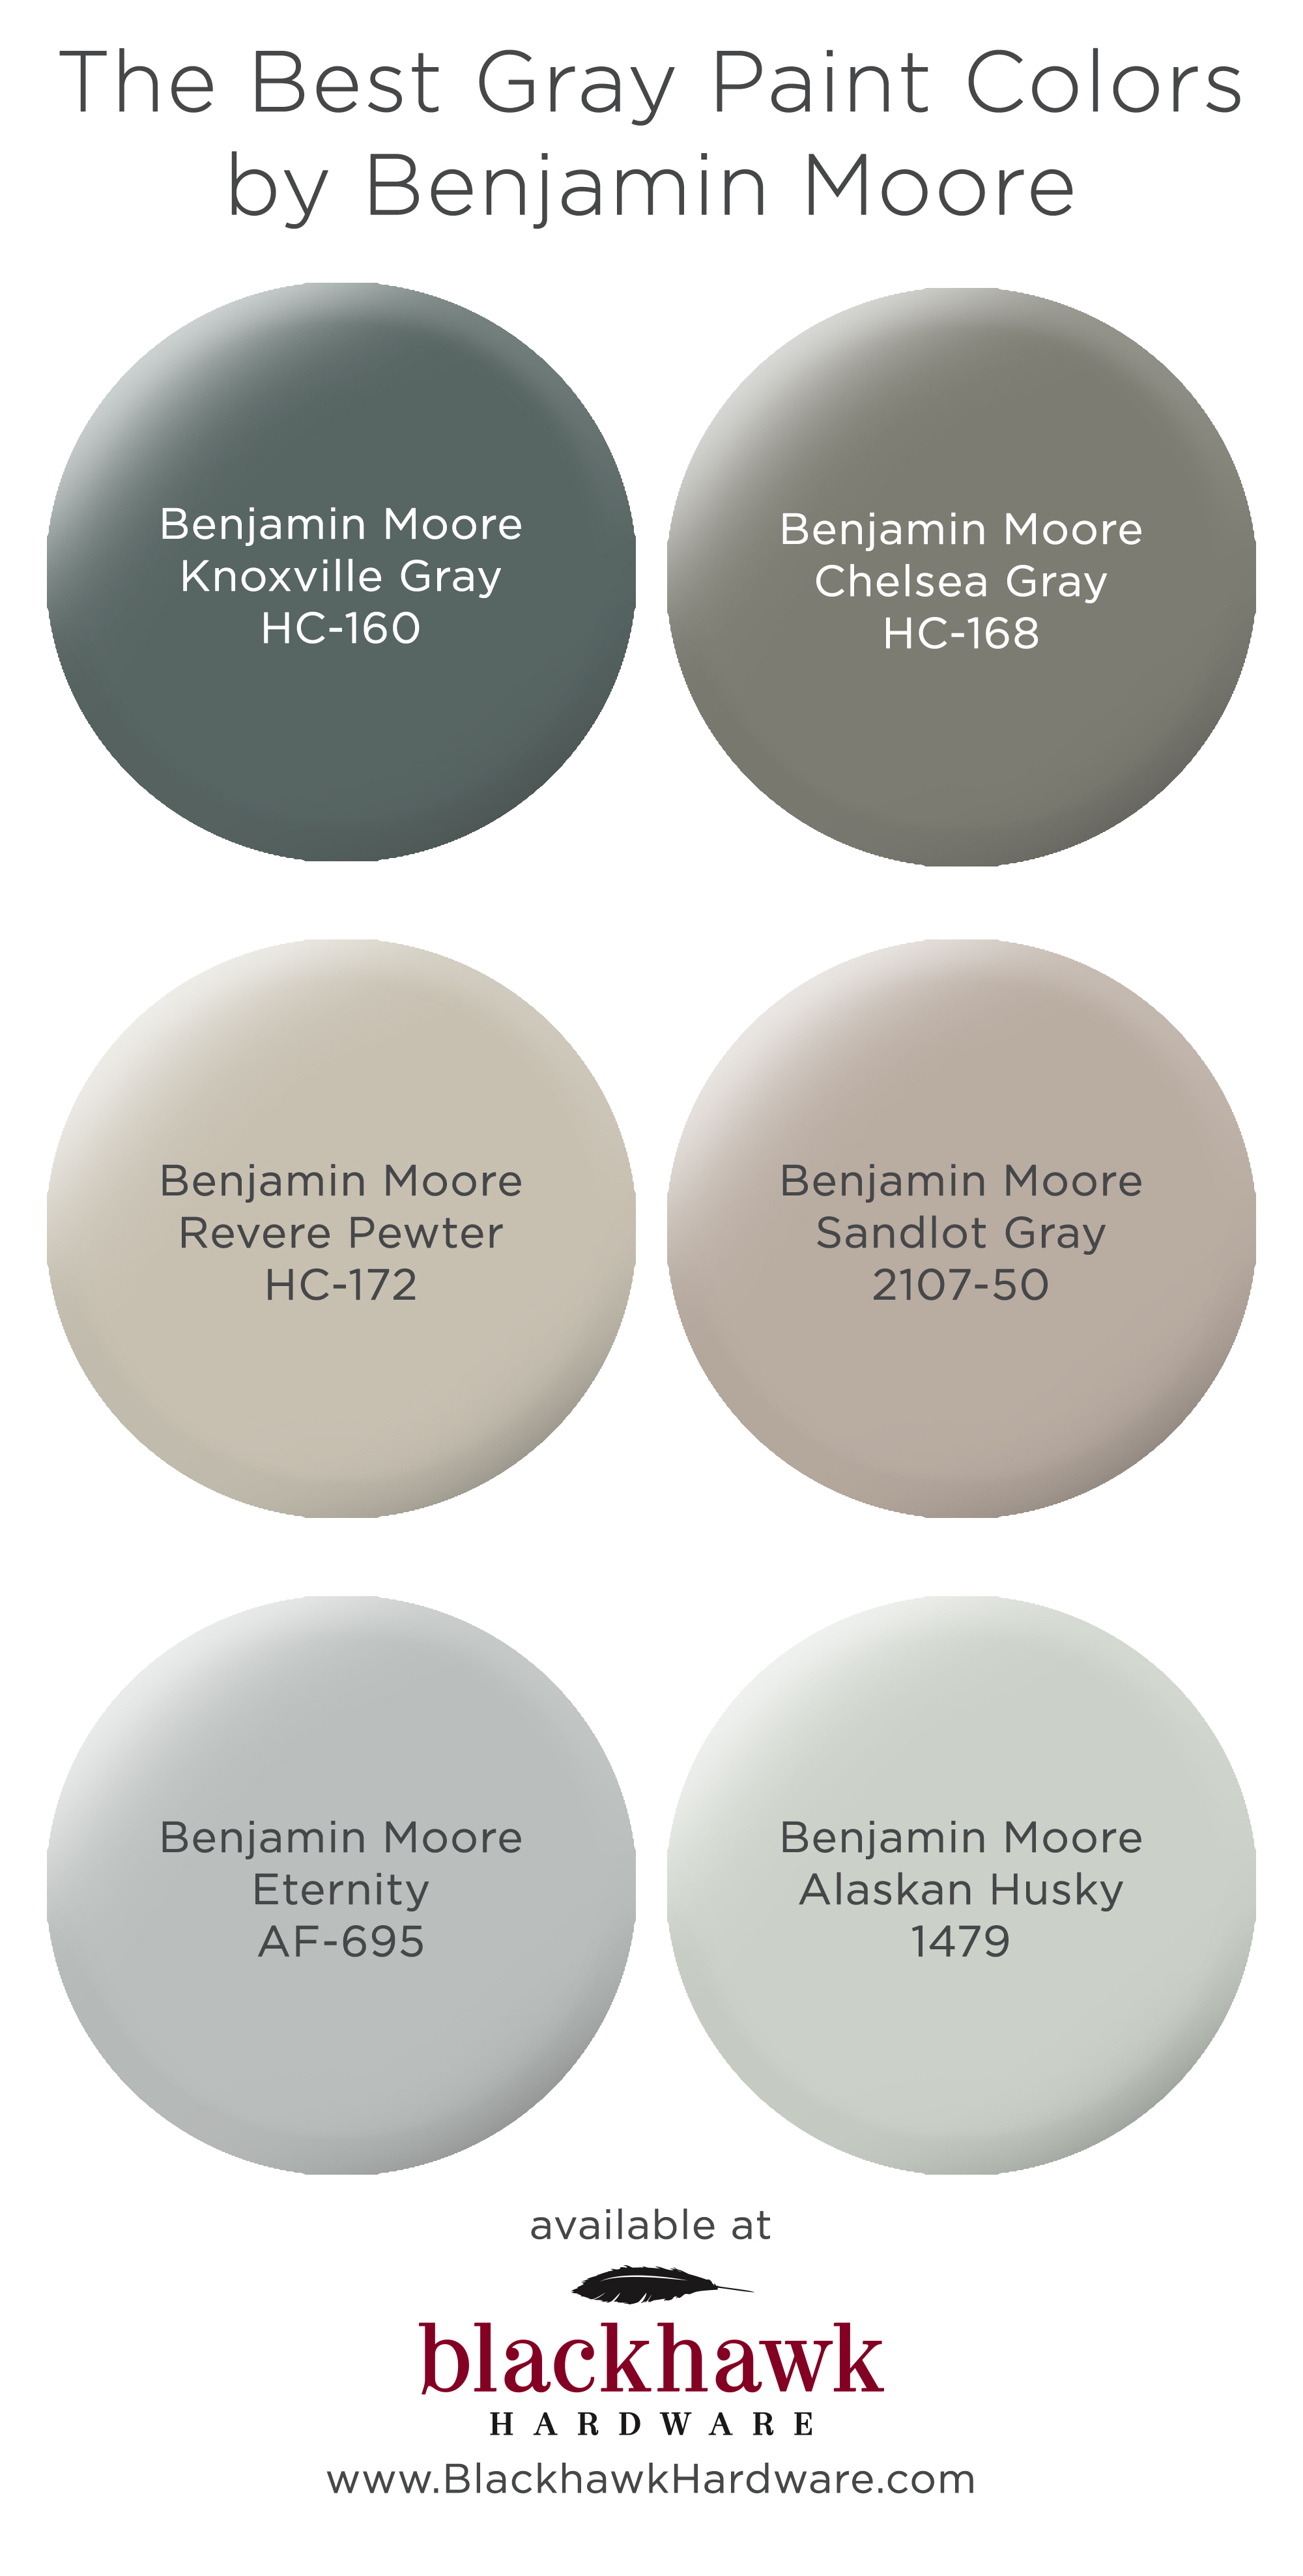 The Best Gray Paint Shades by Benjamin Moore – Blackhawk Hardware